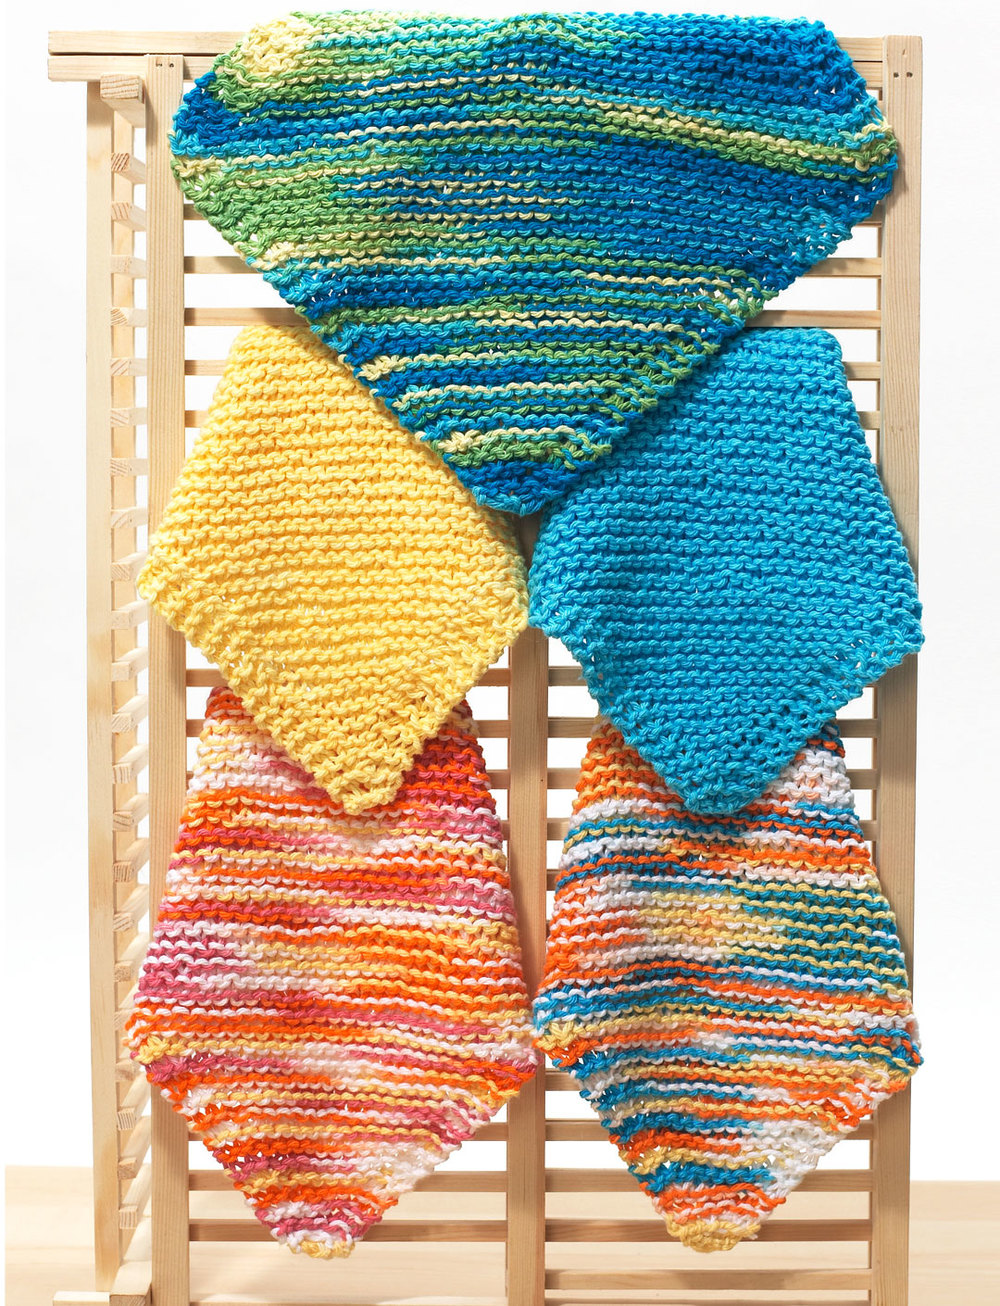 Best Yarn for Dishcloths | FaveCrafts.com